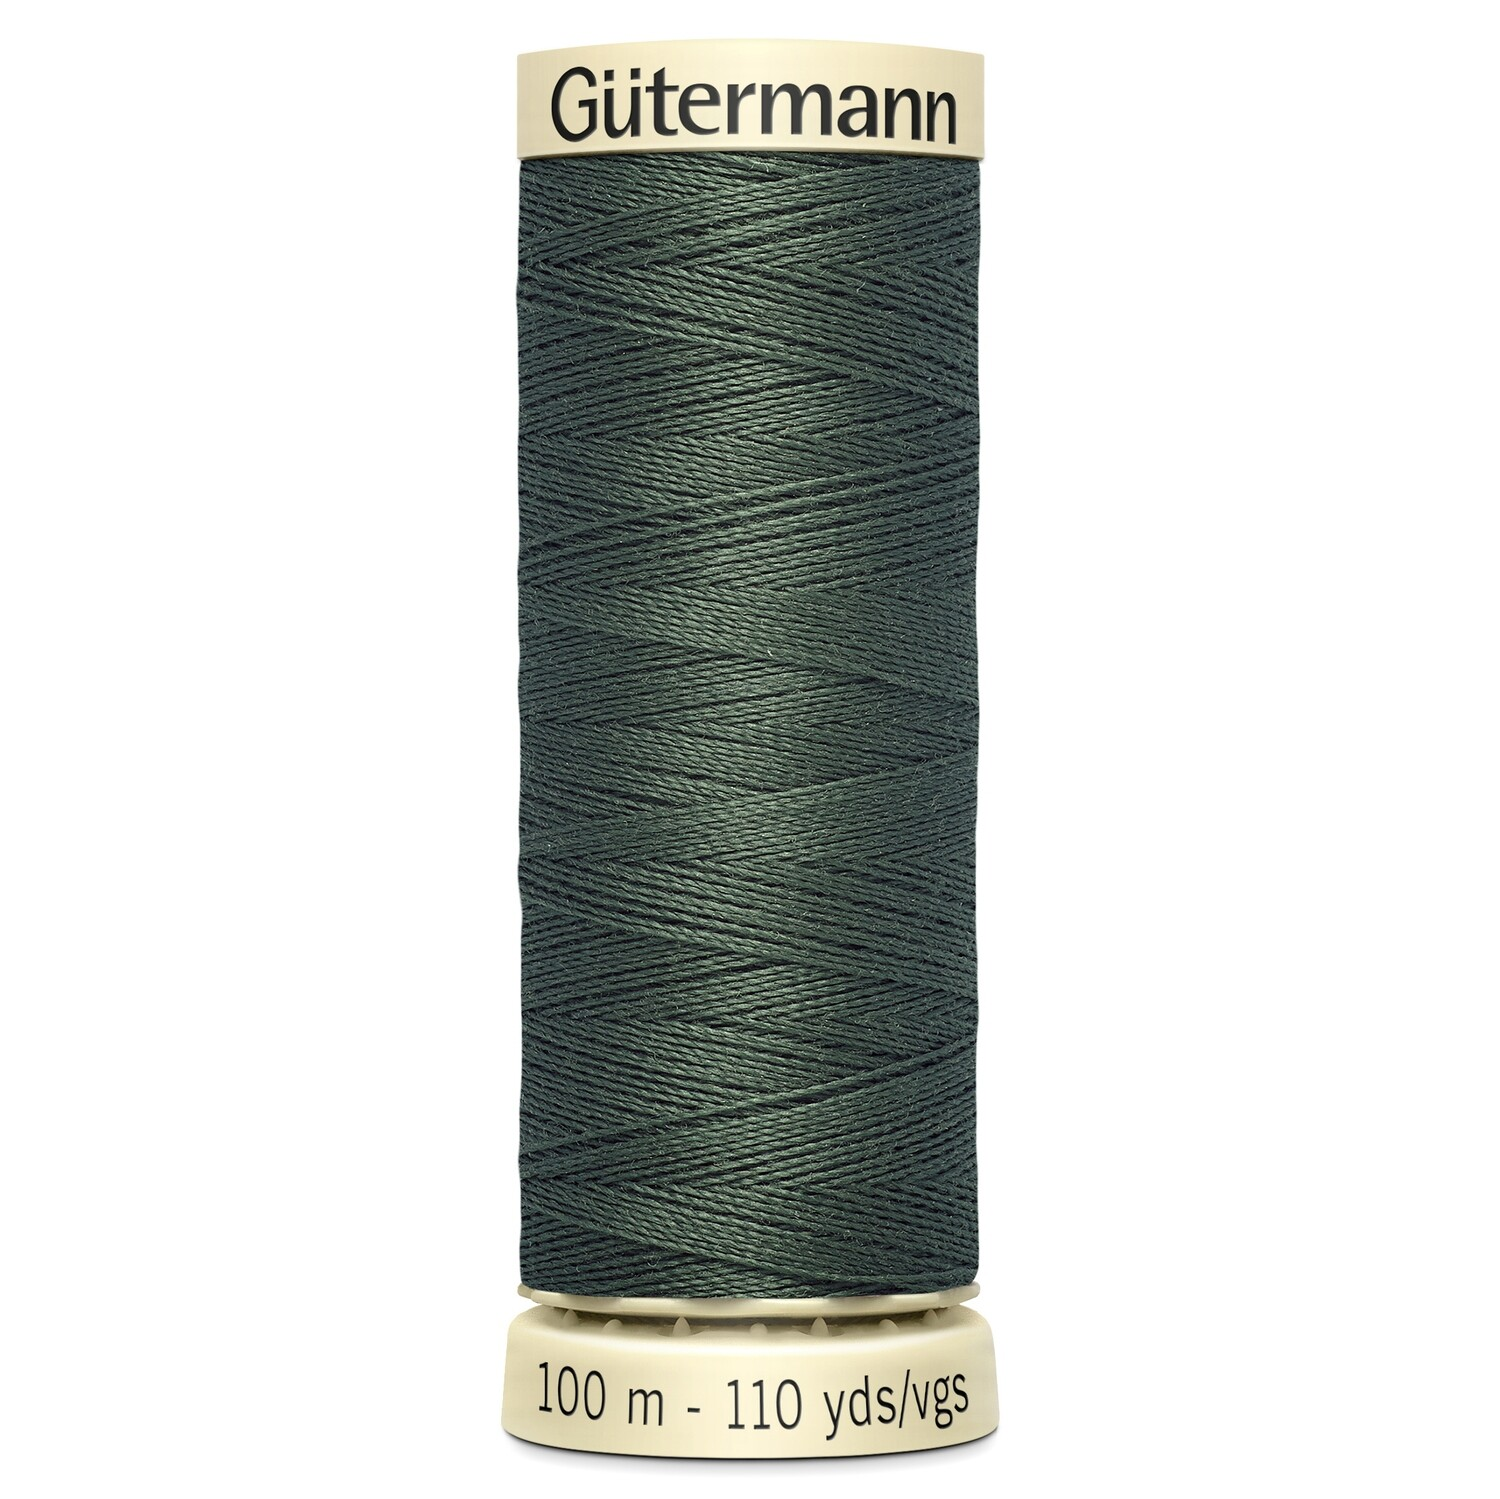 Gutermann Sew-All thread 269